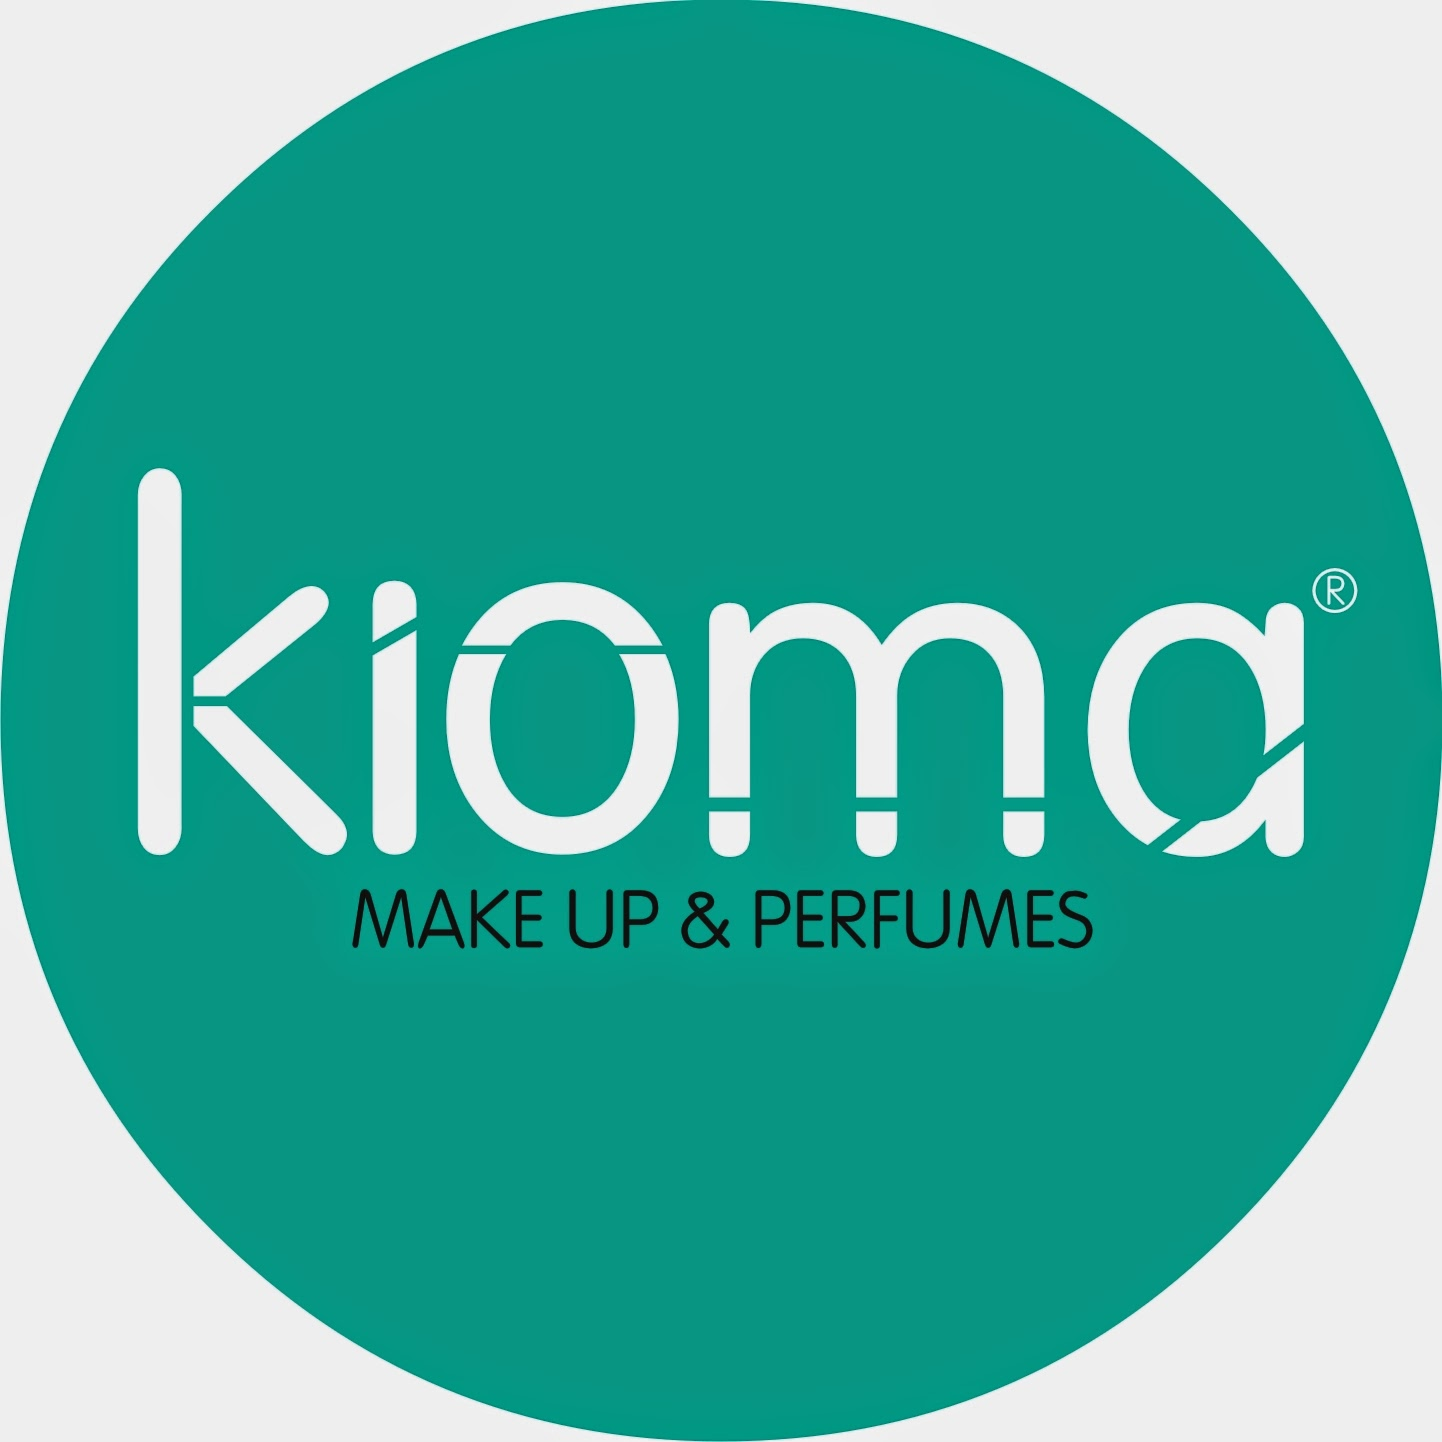 KIOMA - Make Up & Perfumes